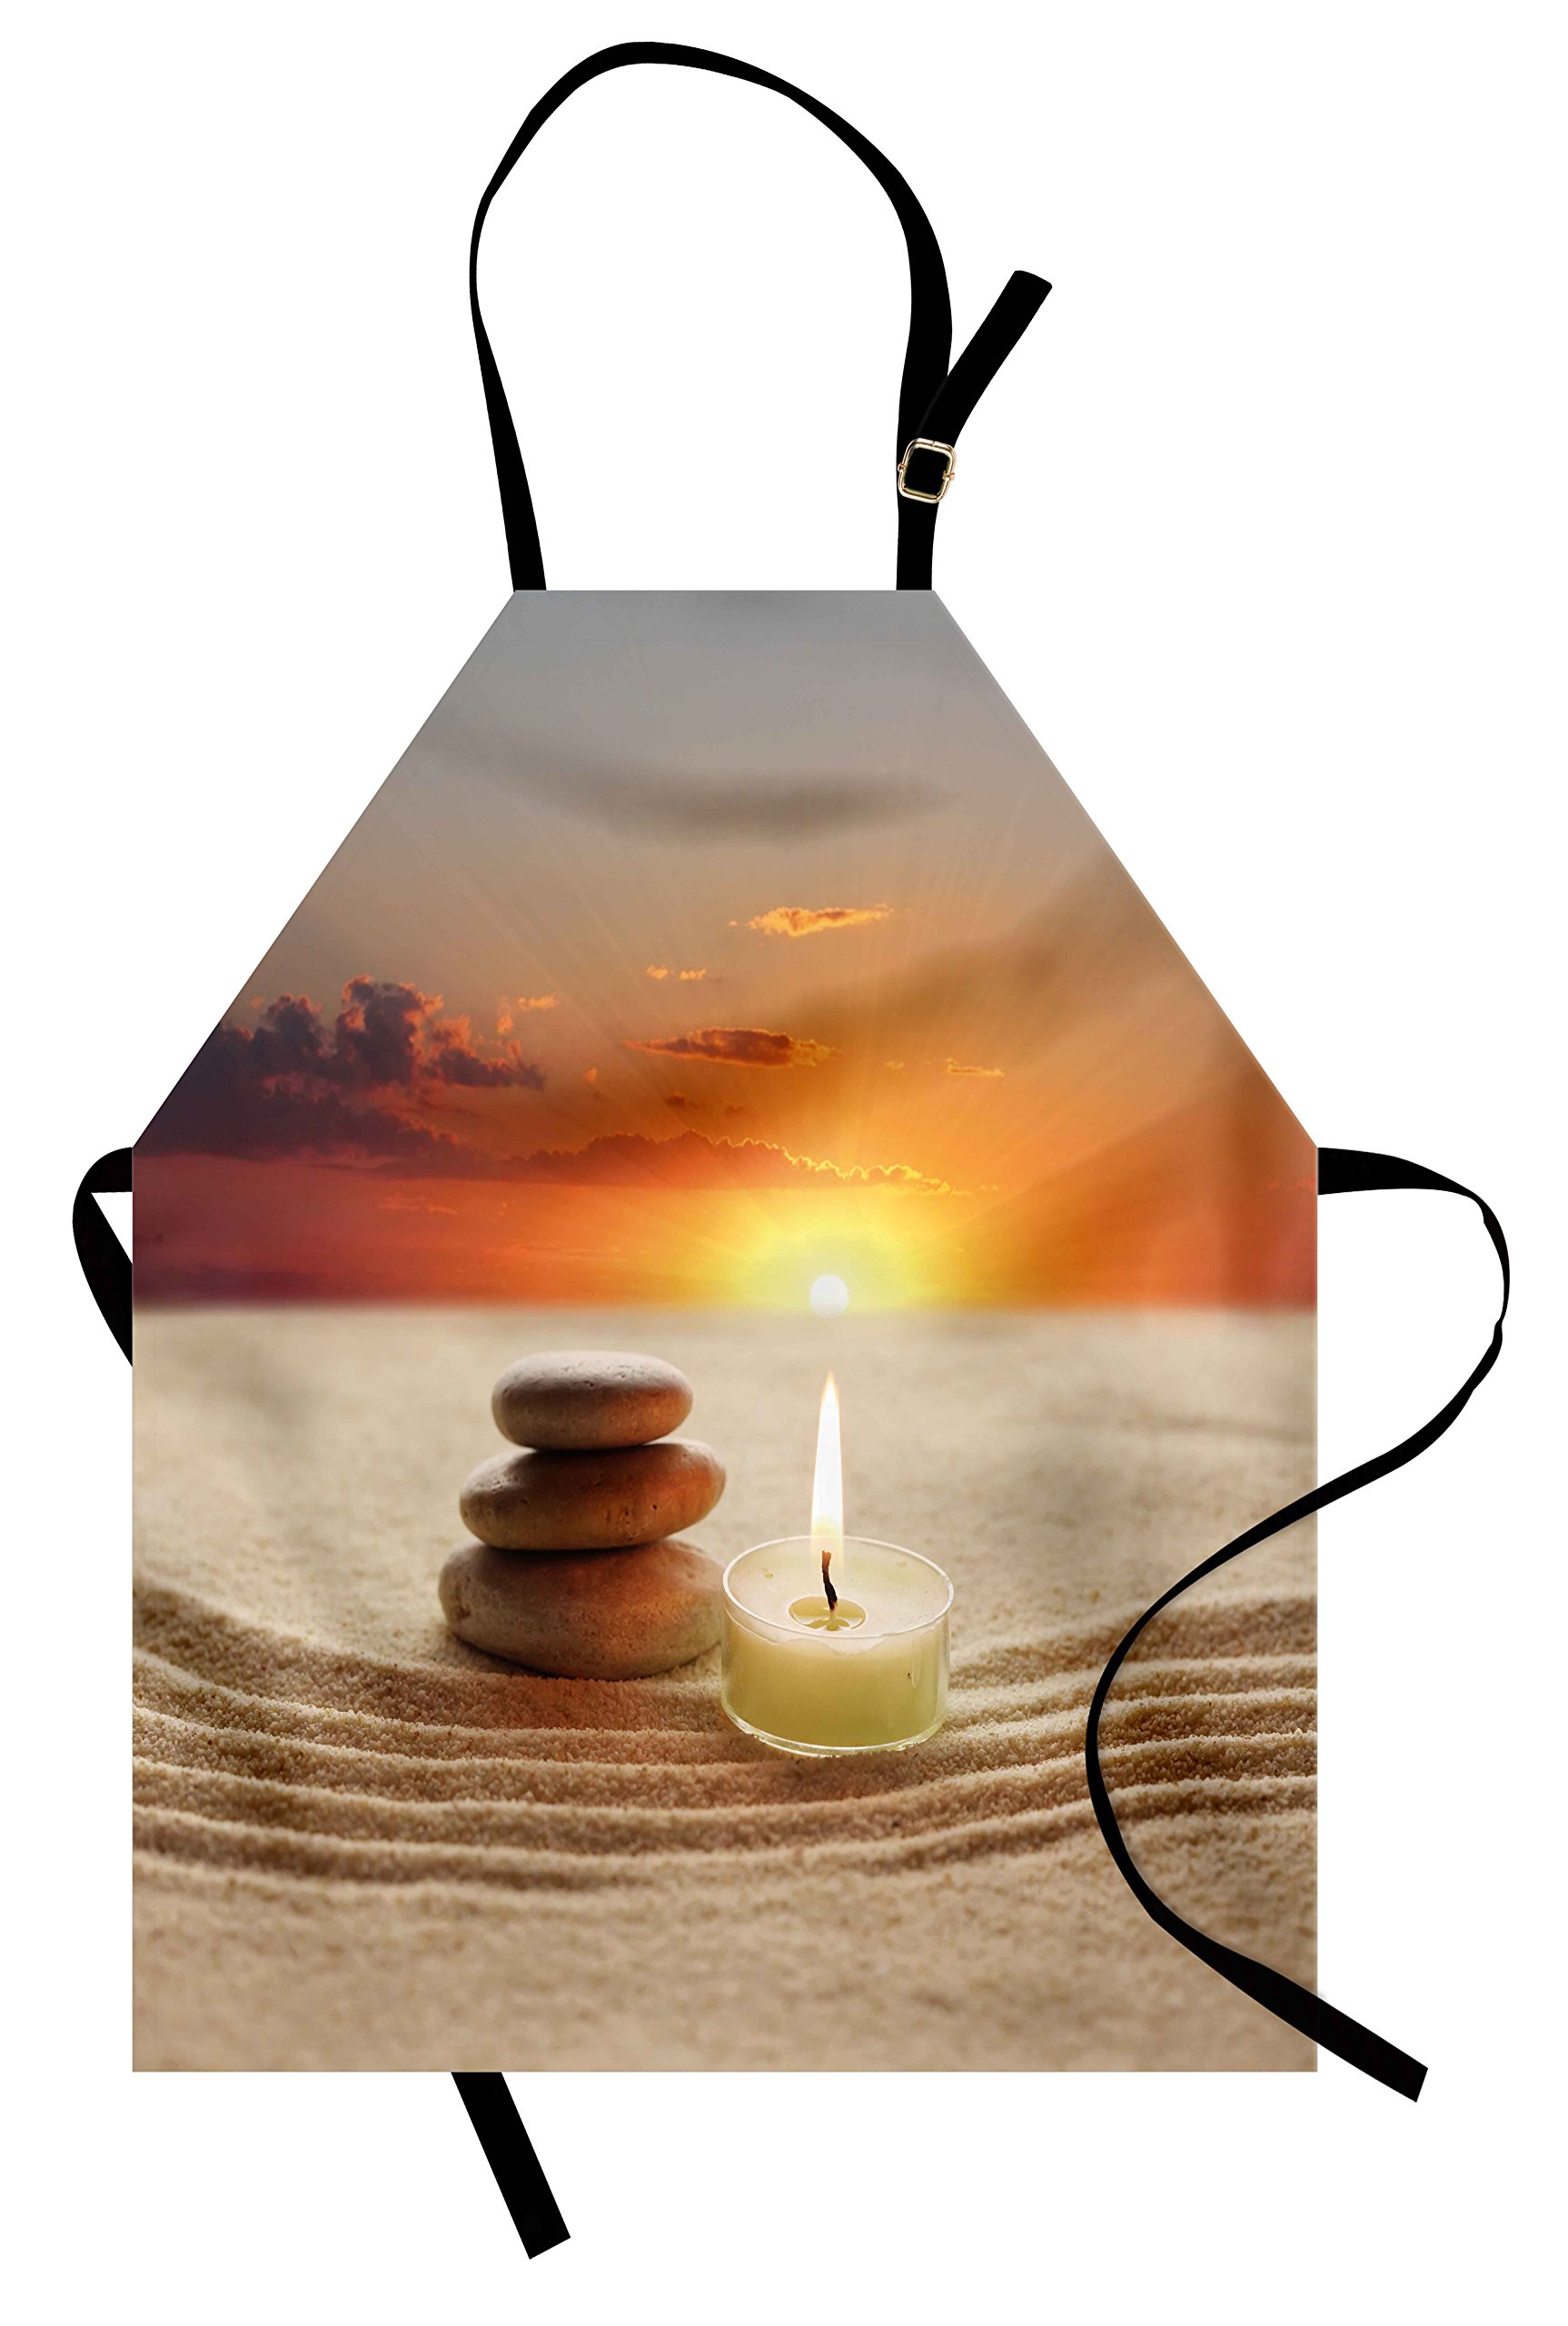 Lunarable Spa Apron, Little Candle with Three Stones Middle of Sand with Sunset Serene Landscape, Unisex Kitchen Bib Apron with Adjustable Neck for Cooking Baking Gardening, White Brown and Orange